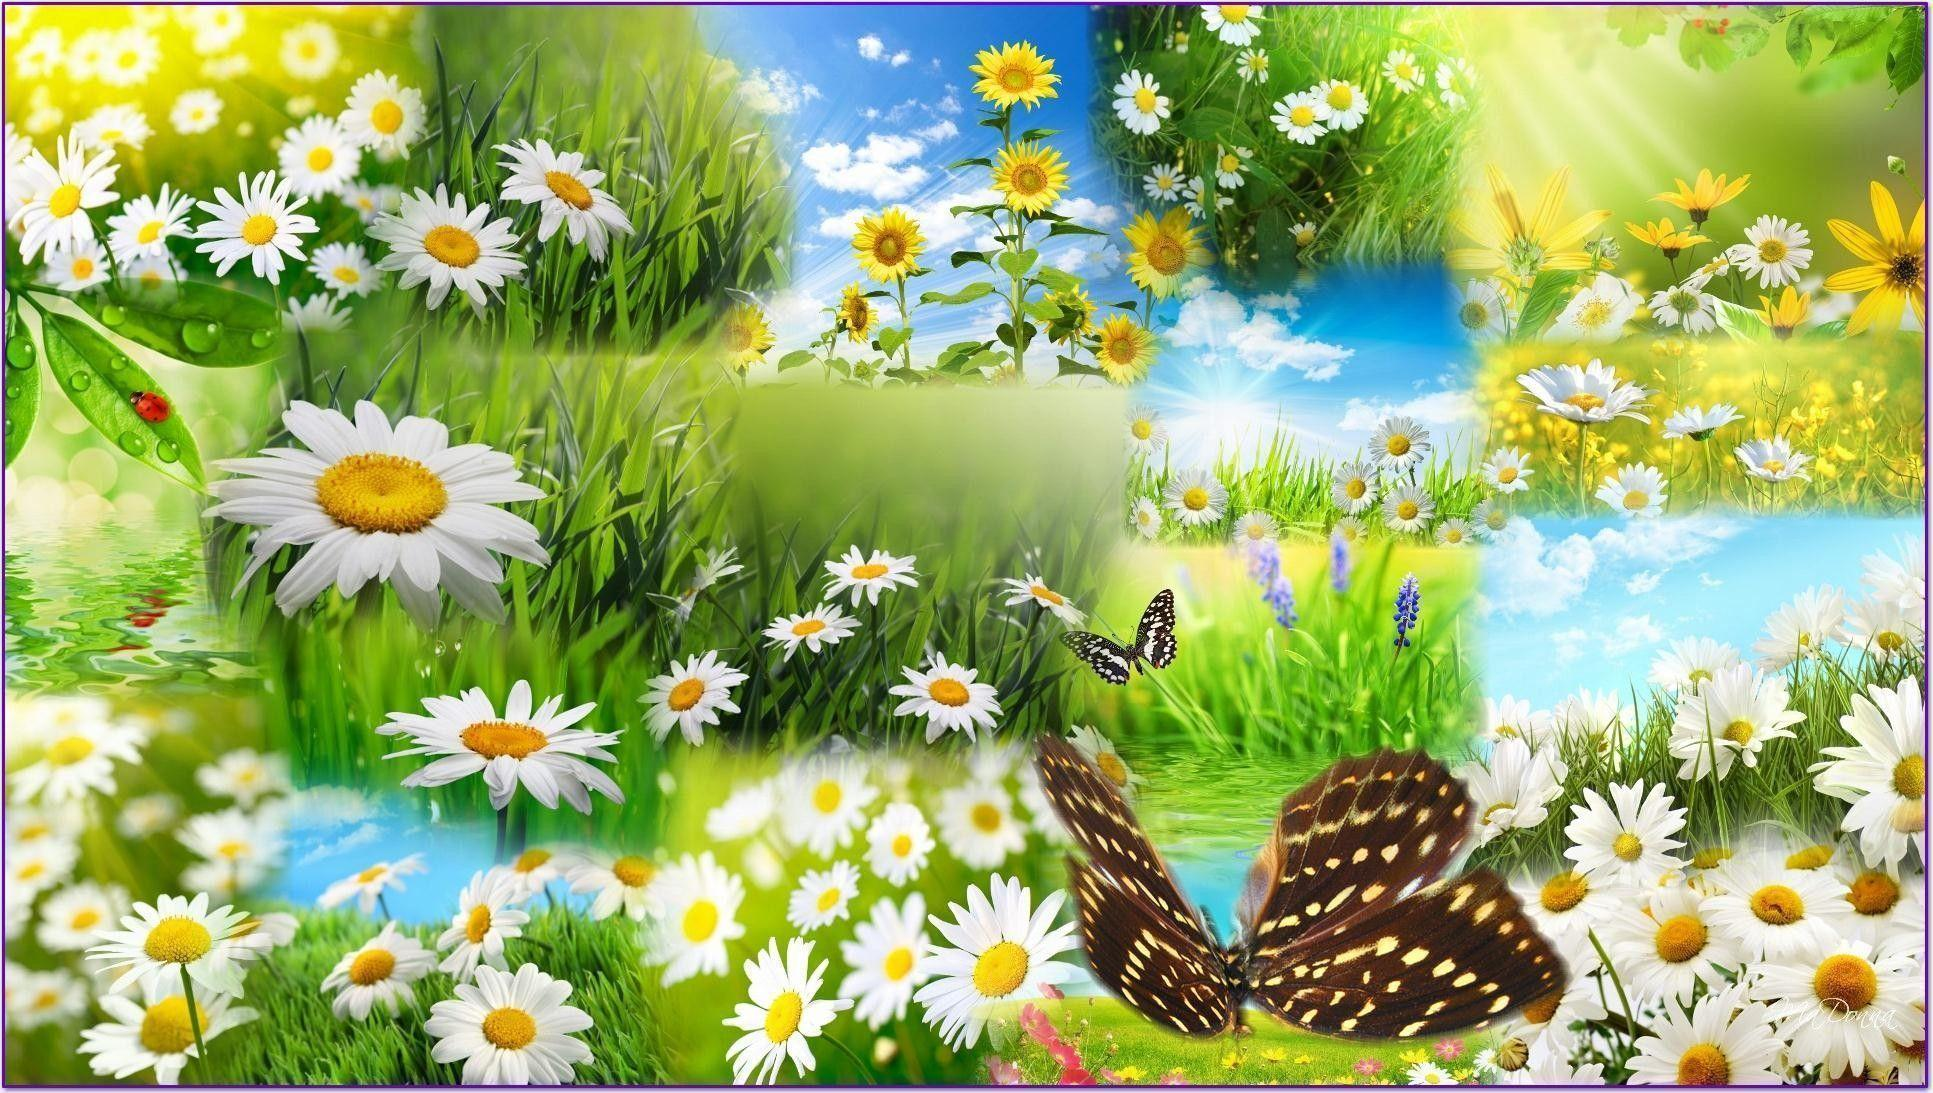 Spring Images Stock Photos amp Vectors  Shutterstock